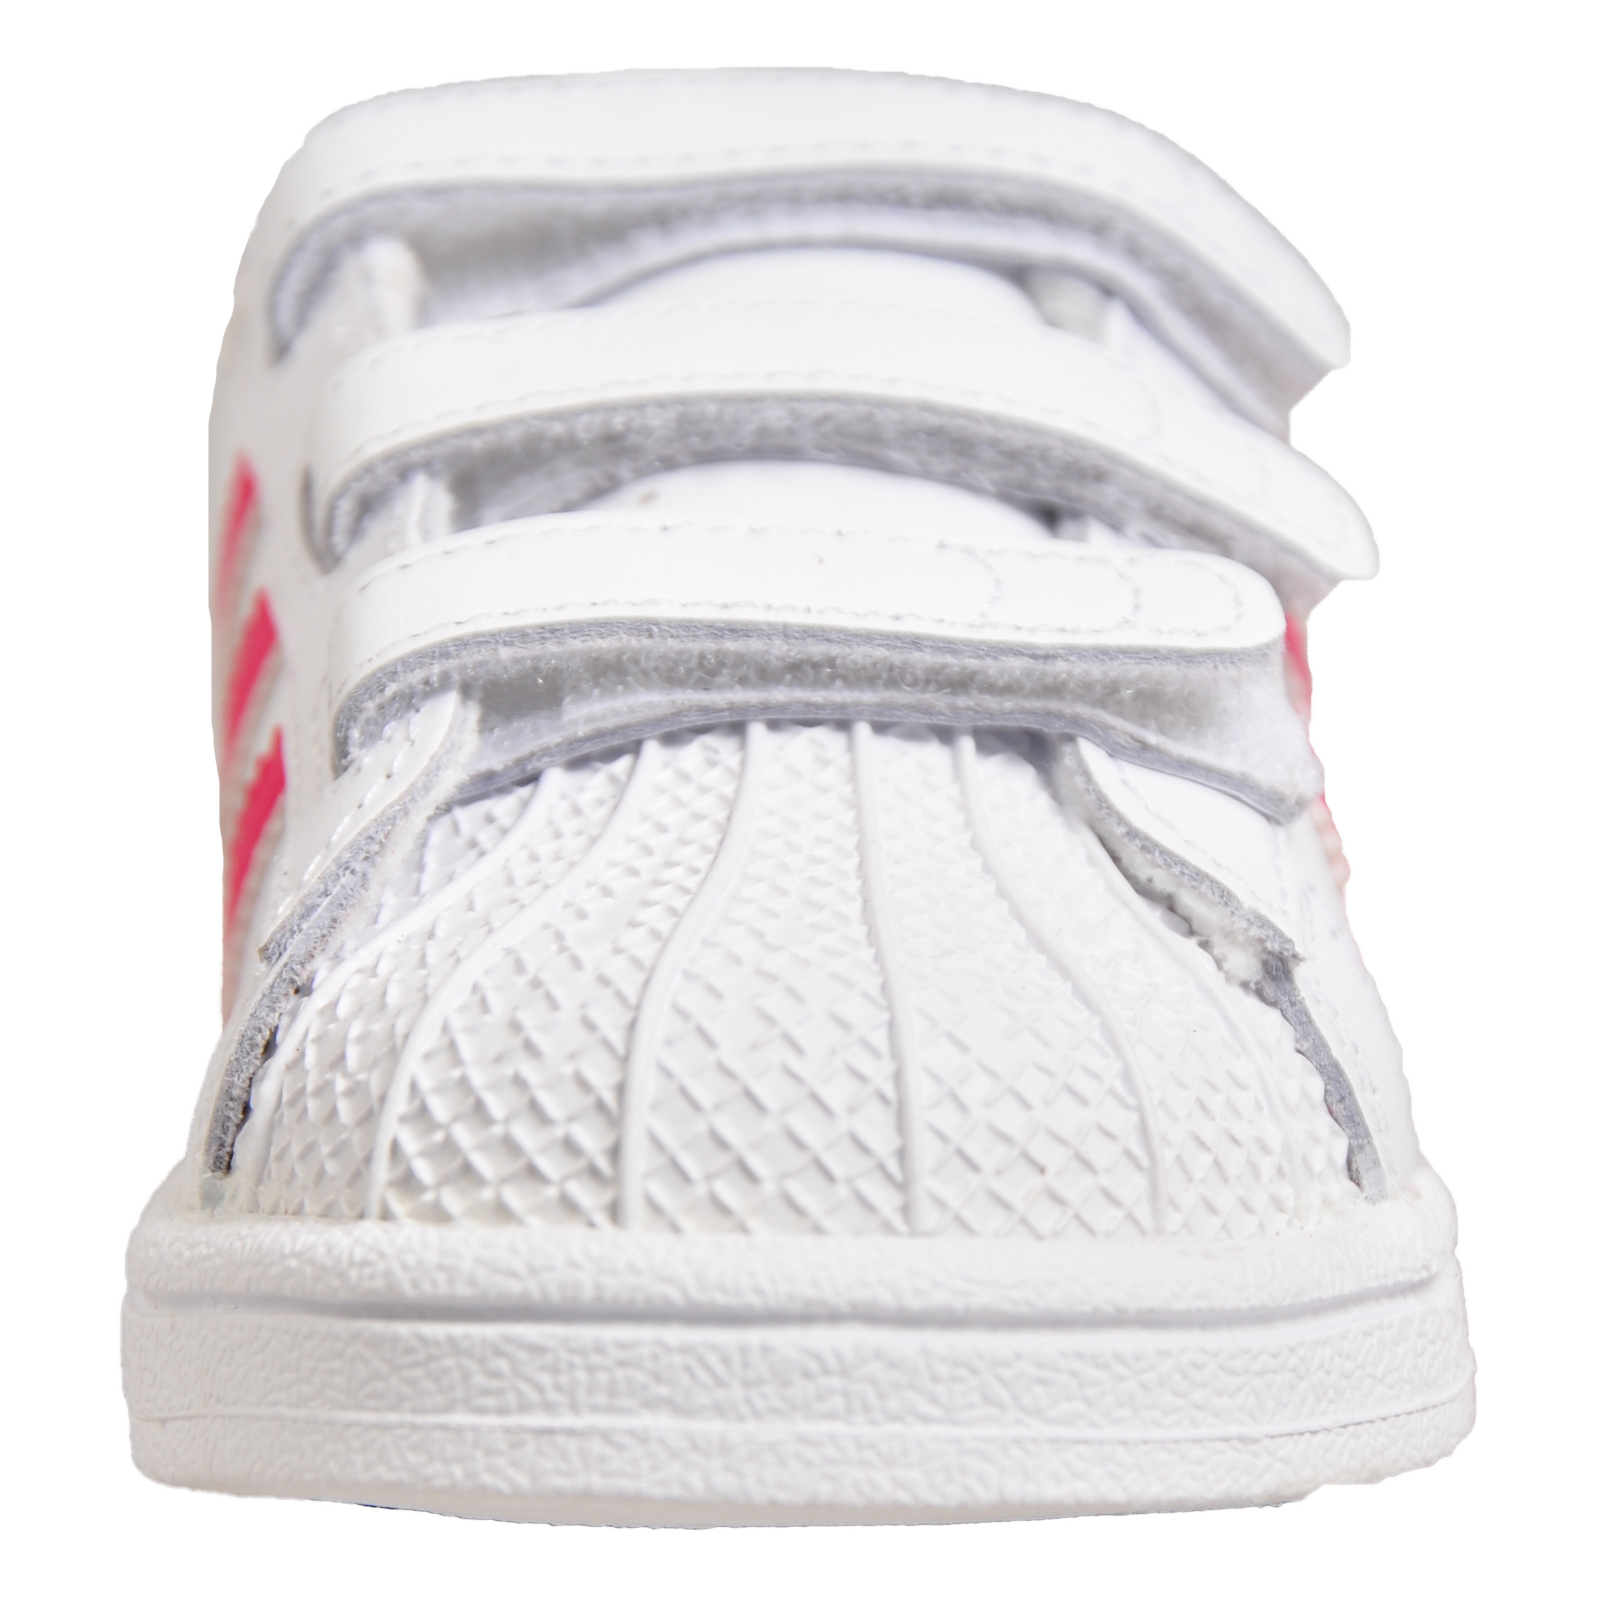 online store 0d2cd 51934 Adidas Originals Superstar Kids Girls Classic Casual Retro Trainers White